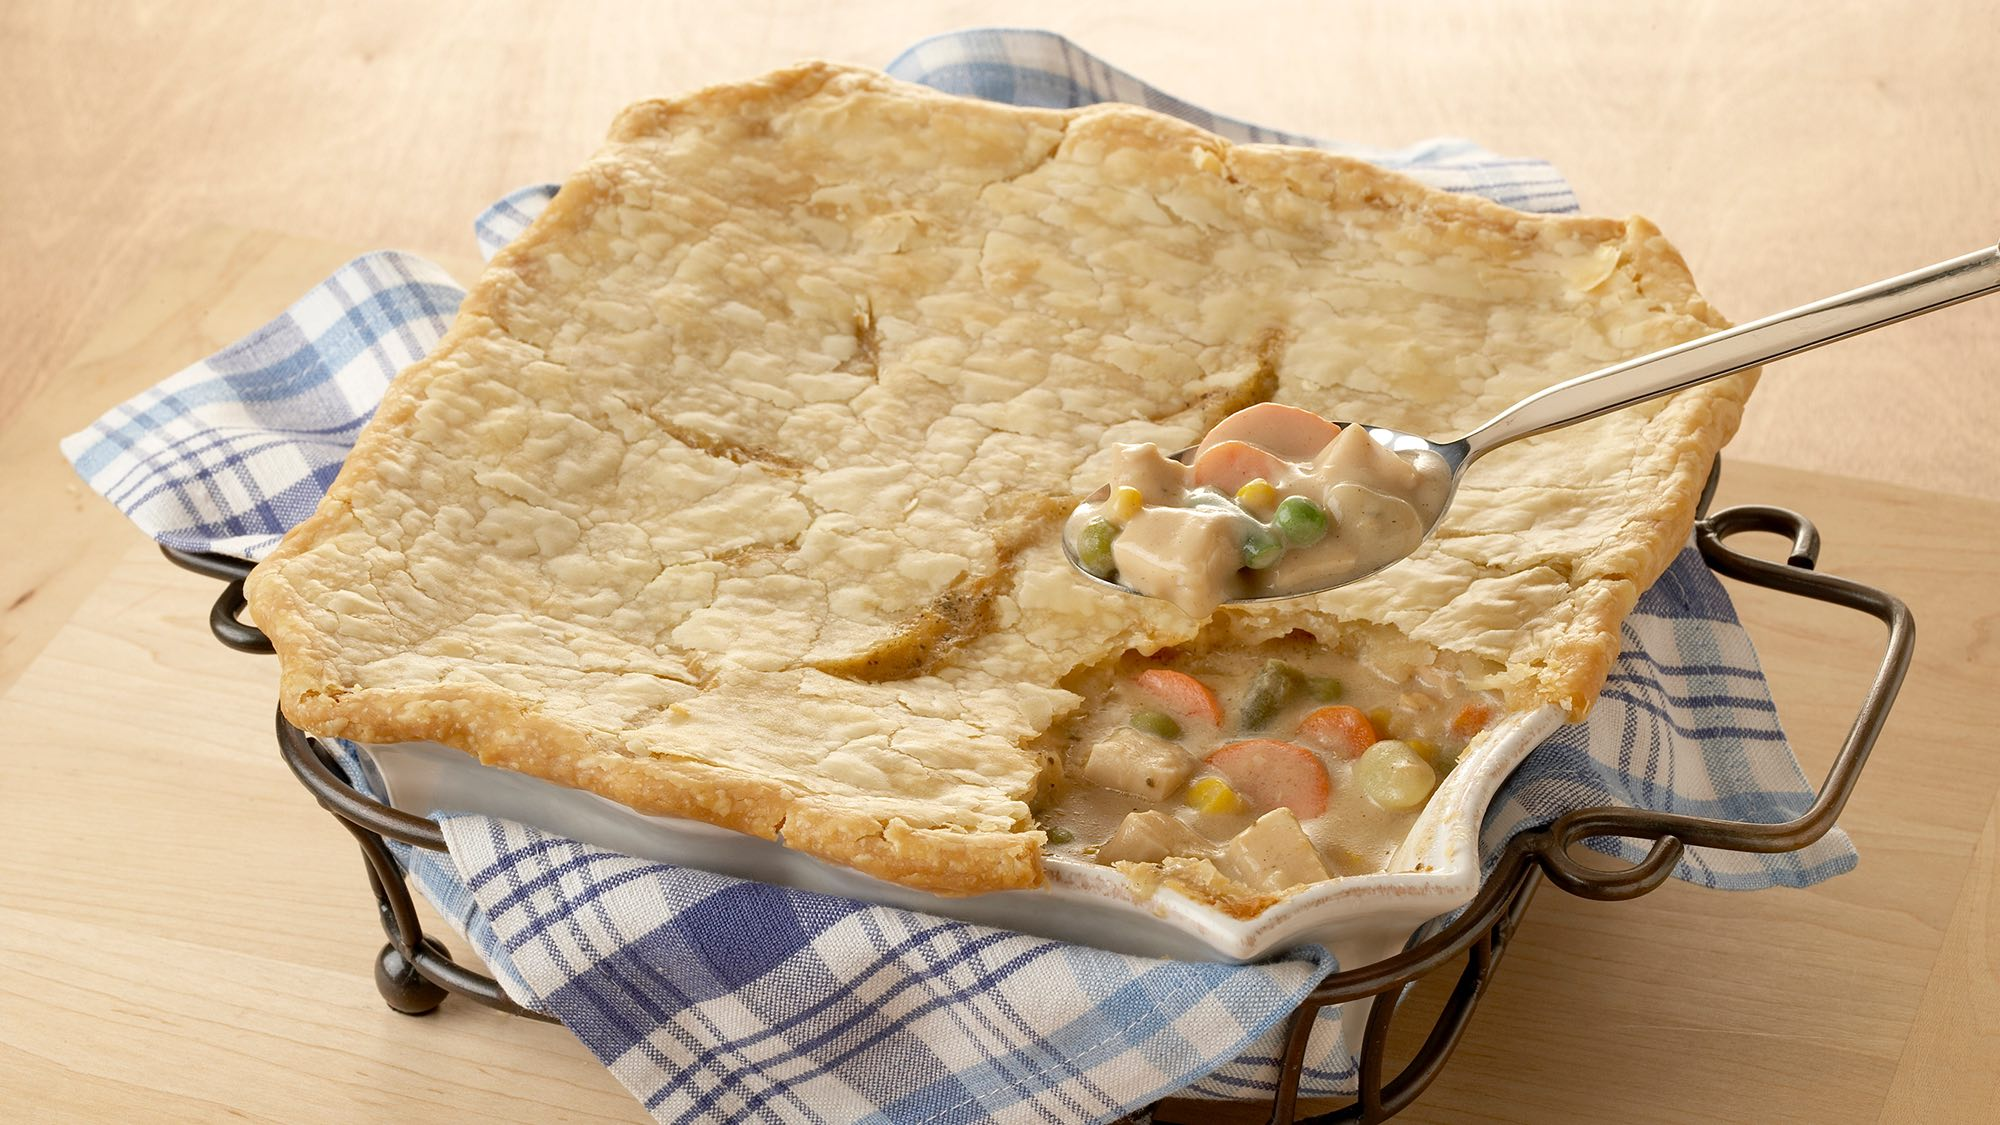 McCormick Turkey Pot Pie